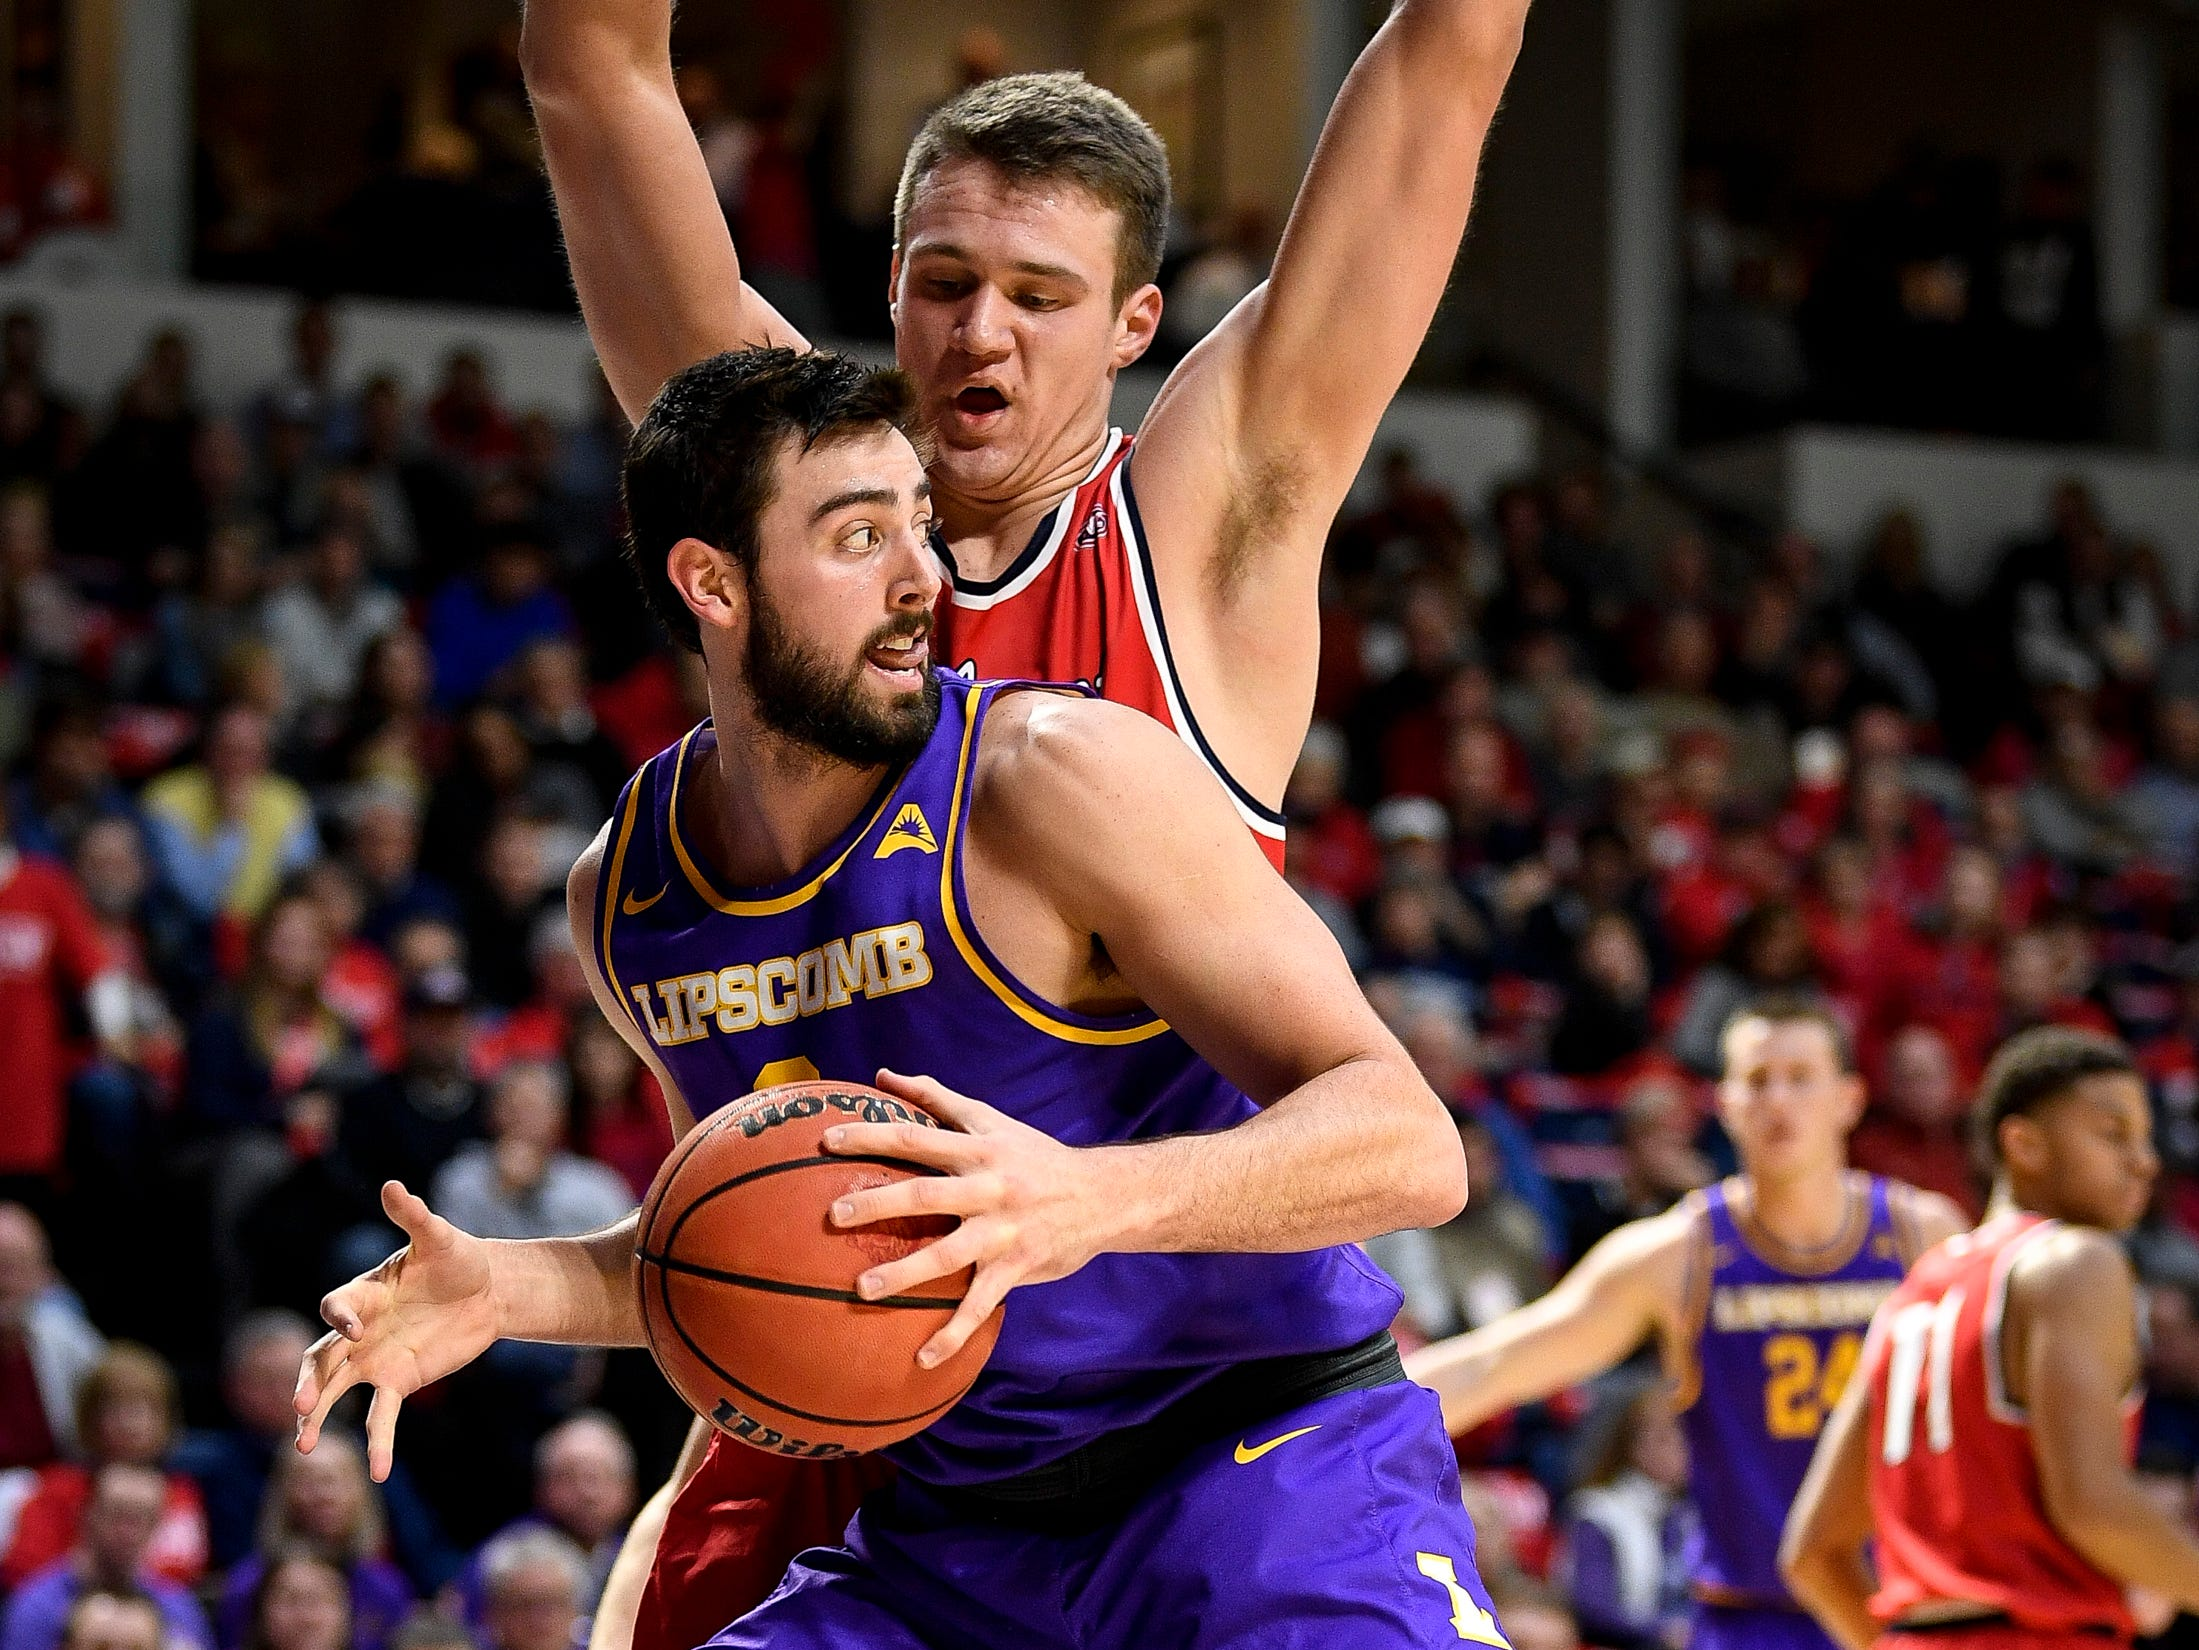 Belmont center Nick Muszynski (33) guards Lipscomb forward Rob Marberry (0) during the second half at the Curb Event Center in Nashville, Tenn., Tuesday, Dec. 4, 2018.